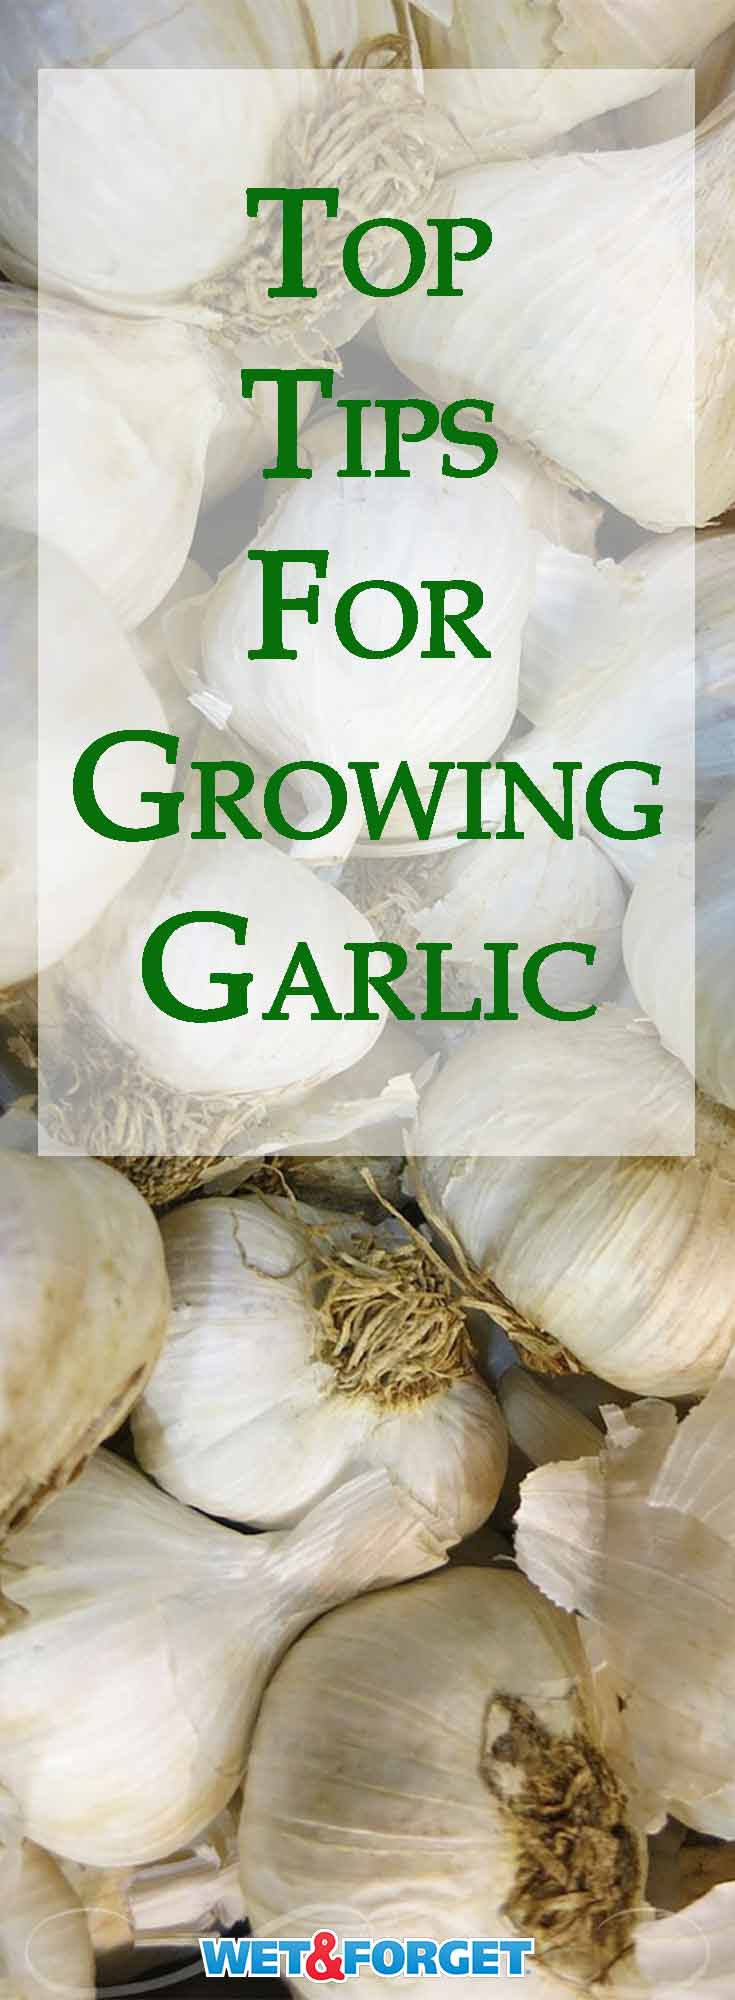 Fall is the best season to start growing garlic! Use our guide for the best tips and tricks to adding garlic to your garden.